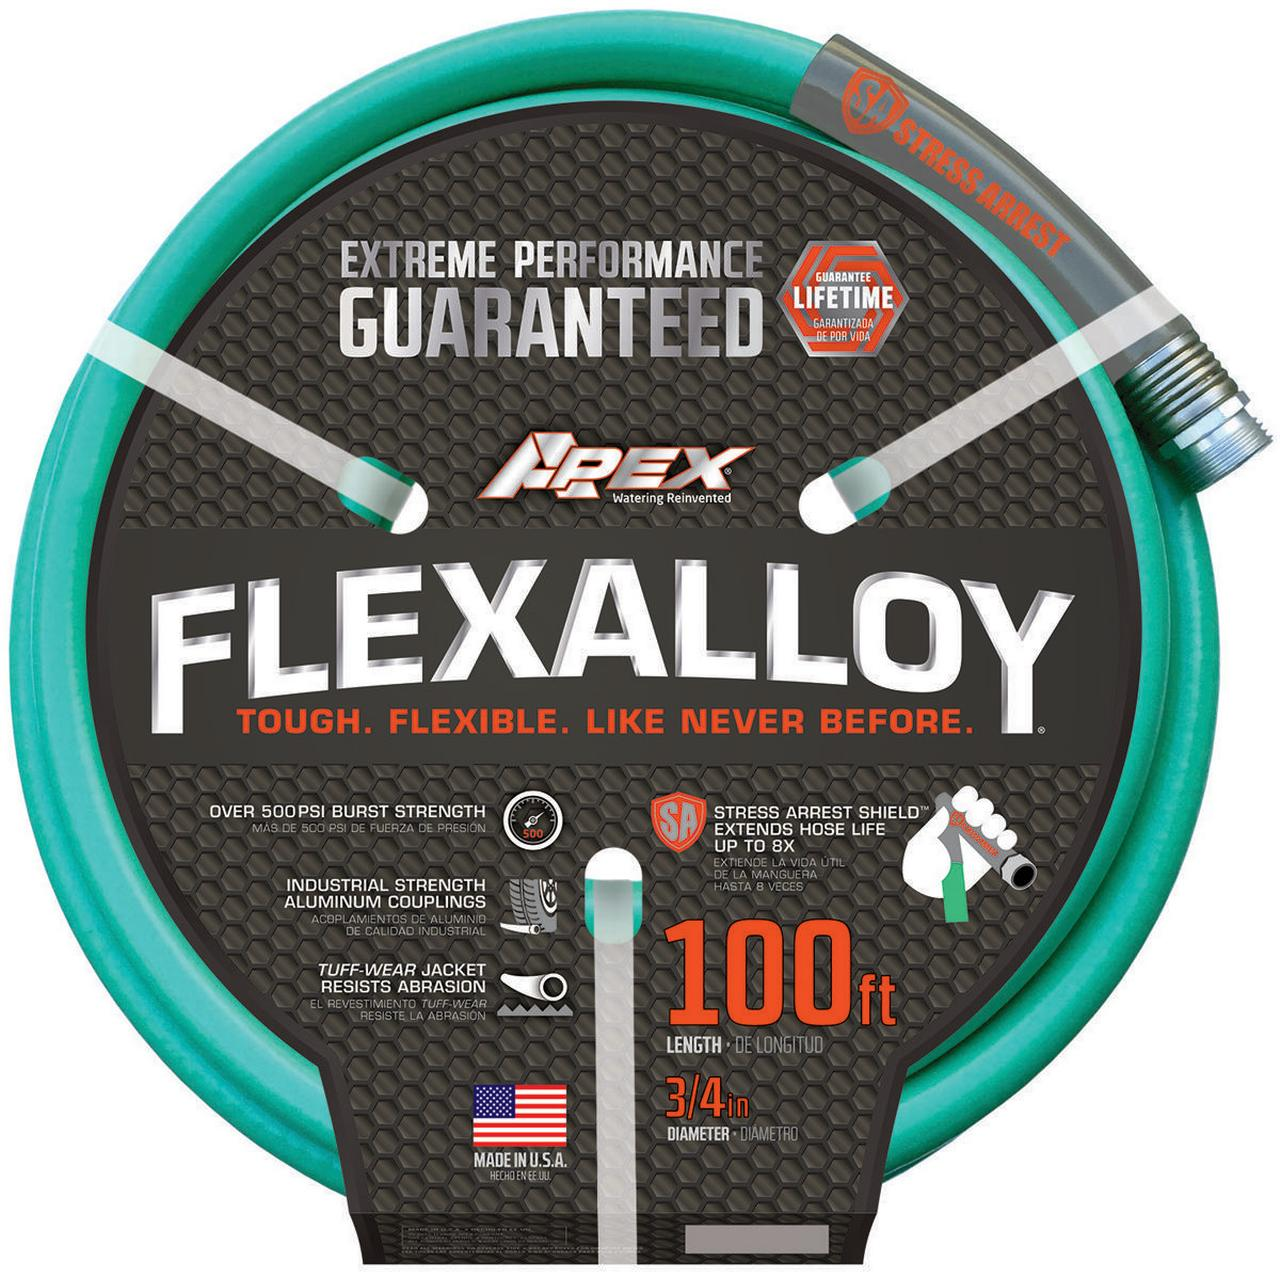 Flexalloy 9550-100 Garden Hose With Power Coil, 3 4 in OD x 100 ft L by Garden Hoses*